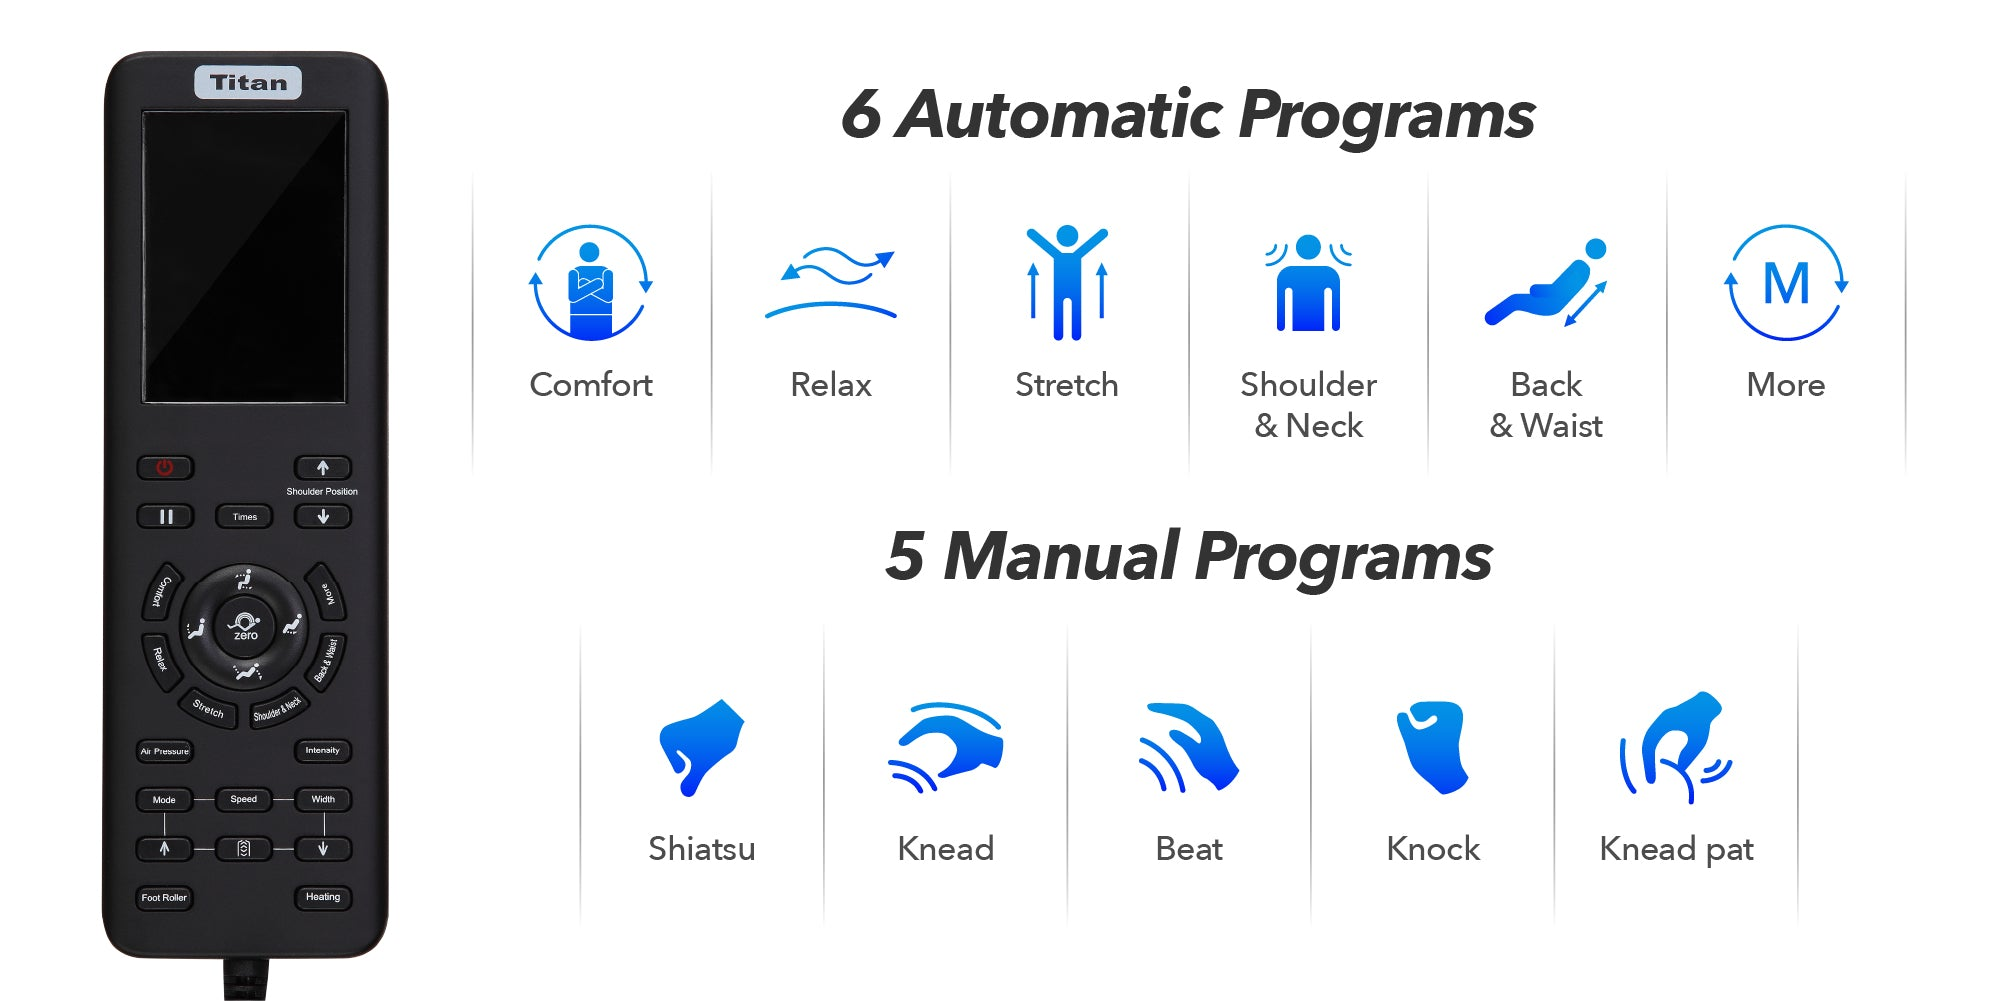 6 automatic programs and 5 manual programs